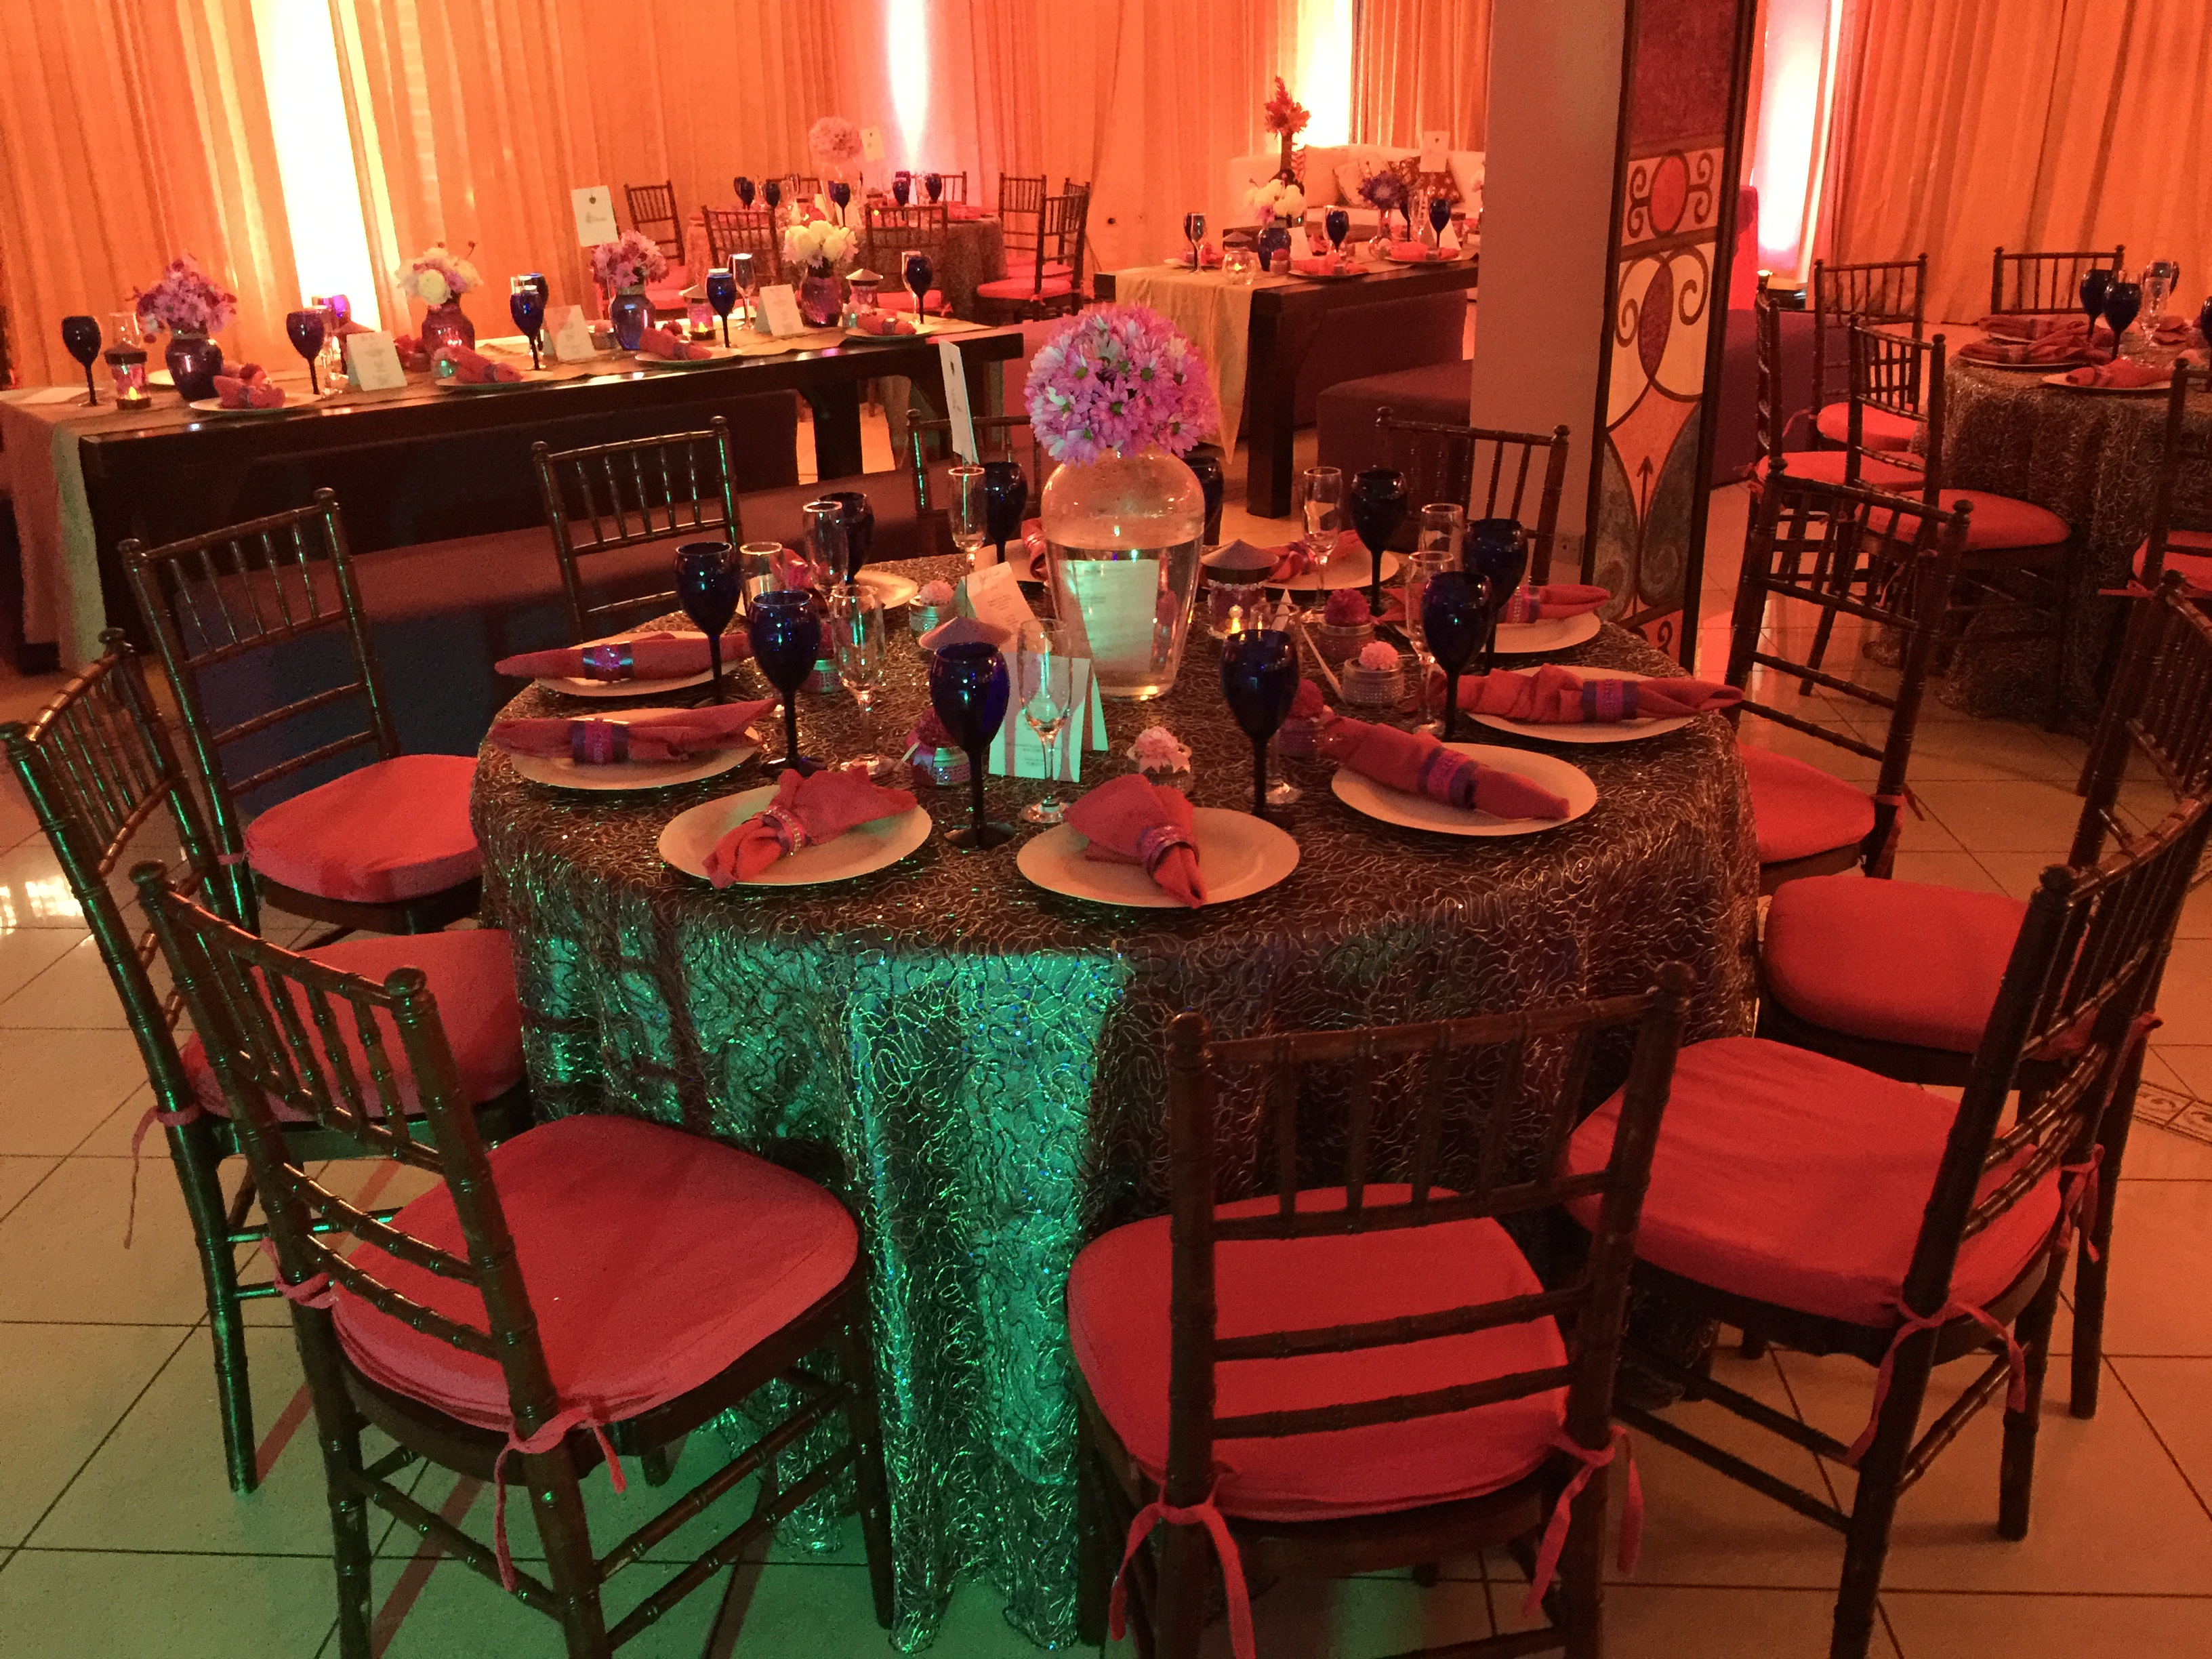 Karl Hart | The Pantry Caterers | Weddings, Food & Decor | Tel #876-929-4149